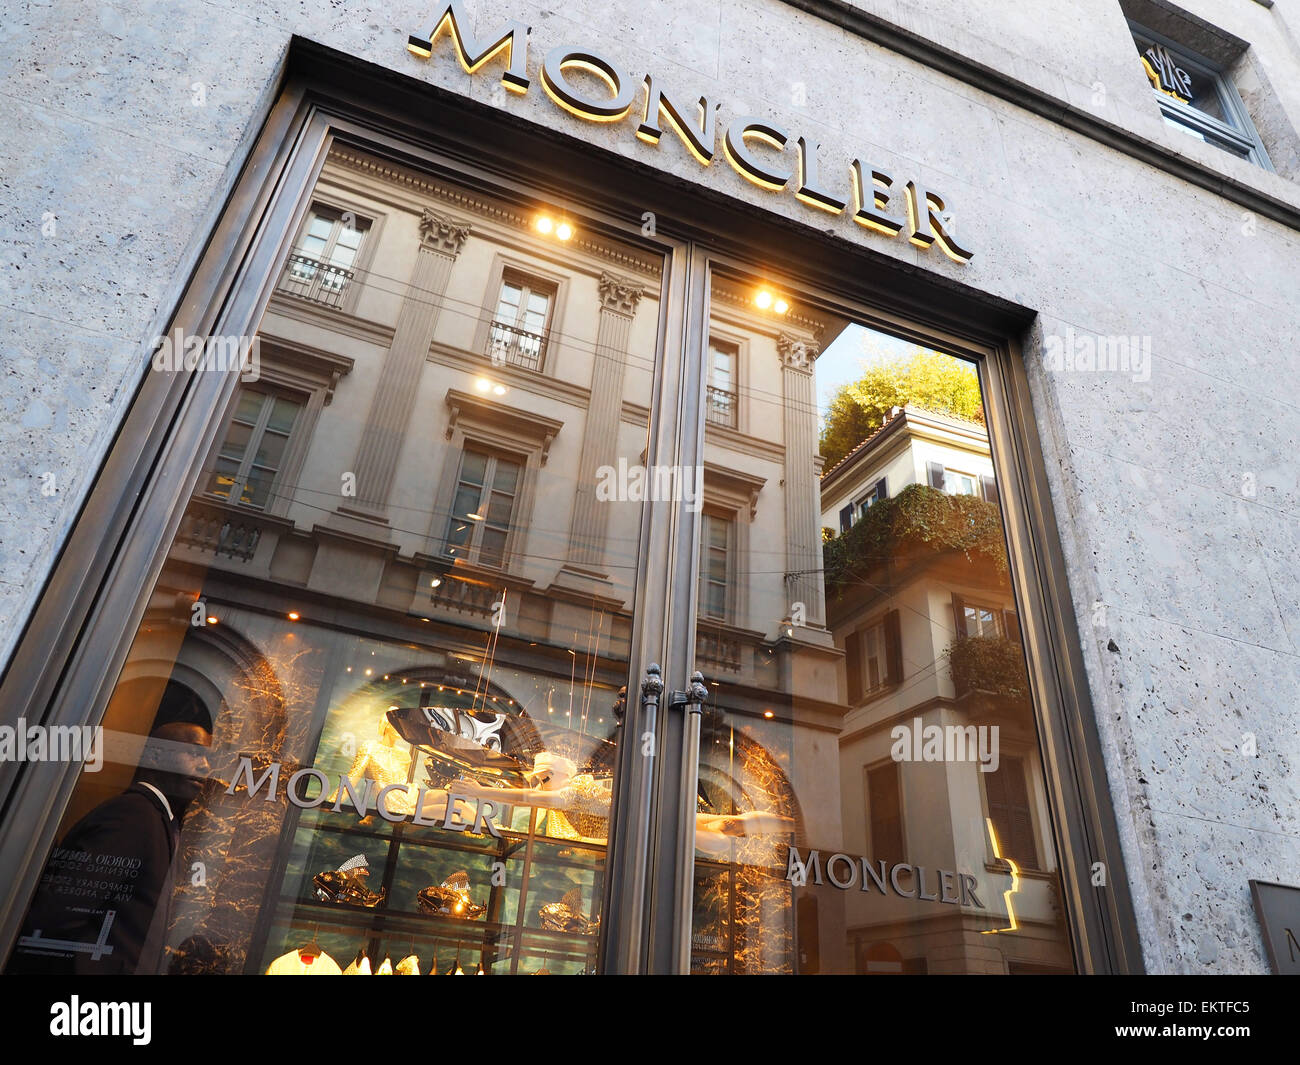 uk availability 4c18b 6a83f Moncler store, Montenapoleone street, Milan, Lombardy, Italy ...